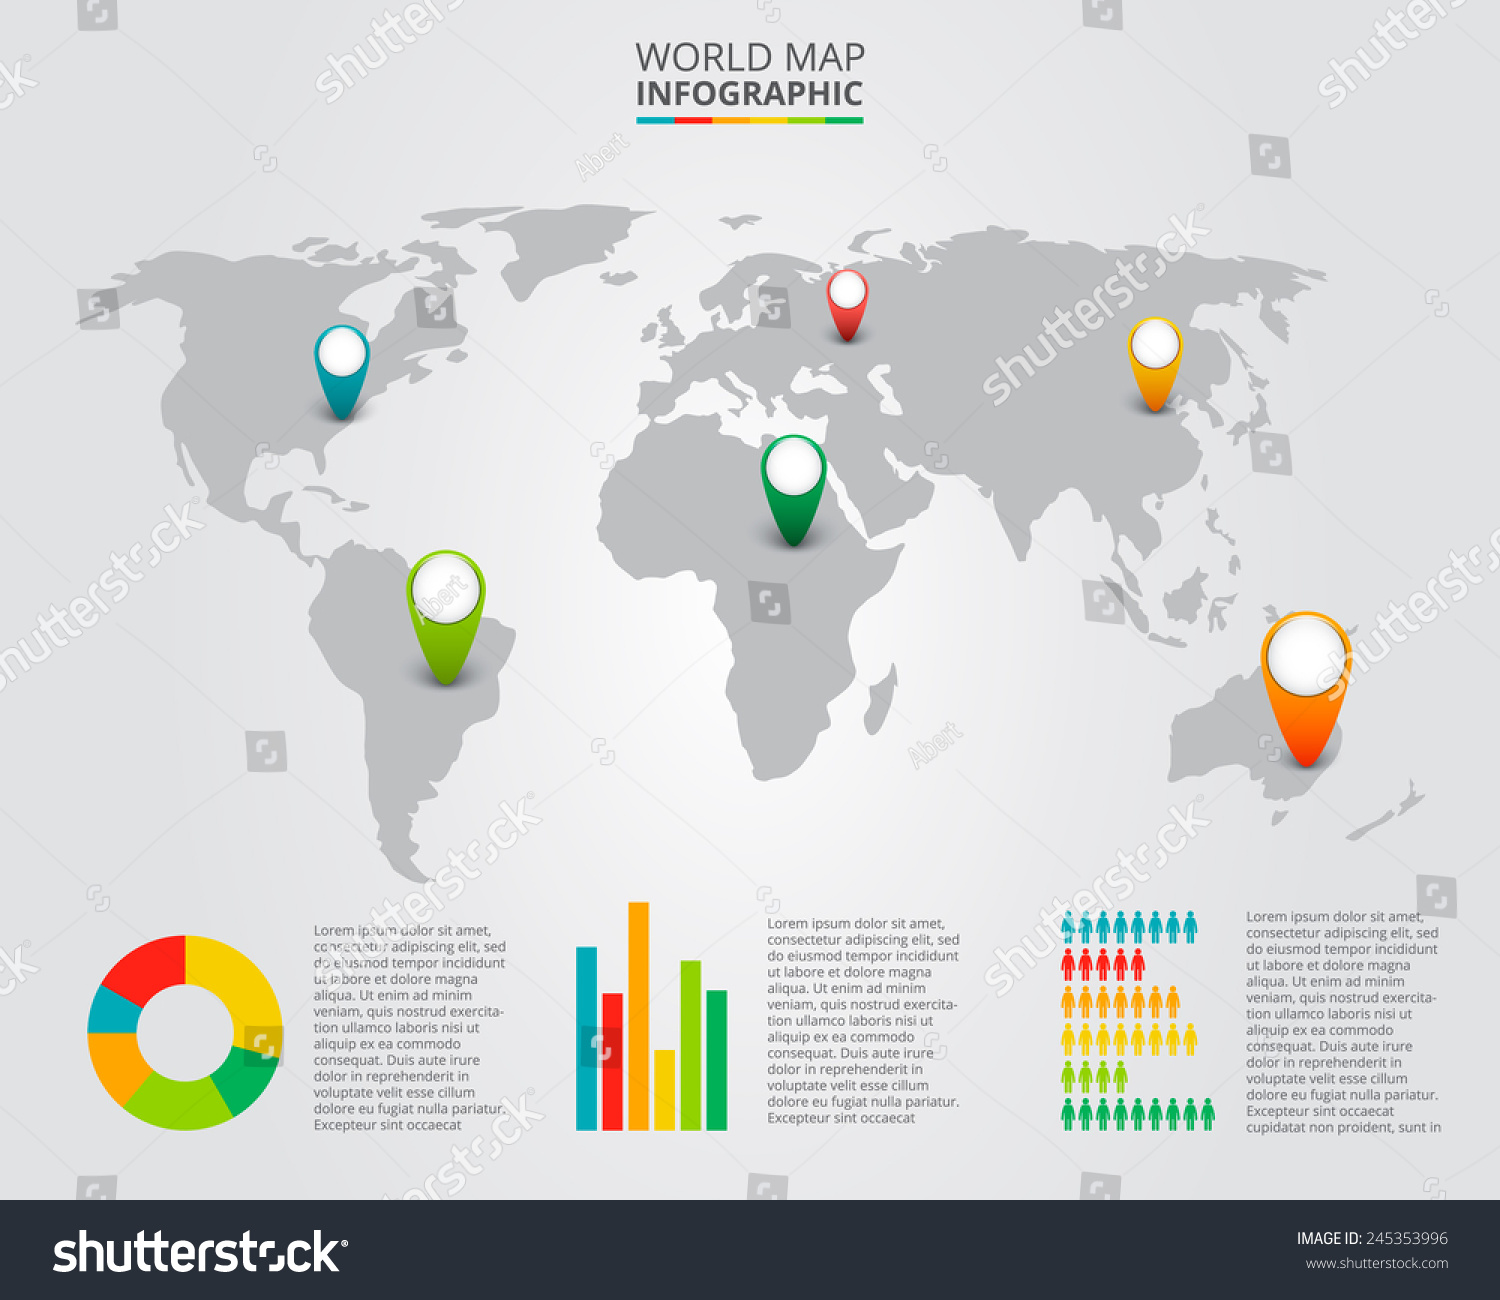 Vector world map infographic elements stock vector 245353996 vector world map with infographic elements gumiabroncs Images